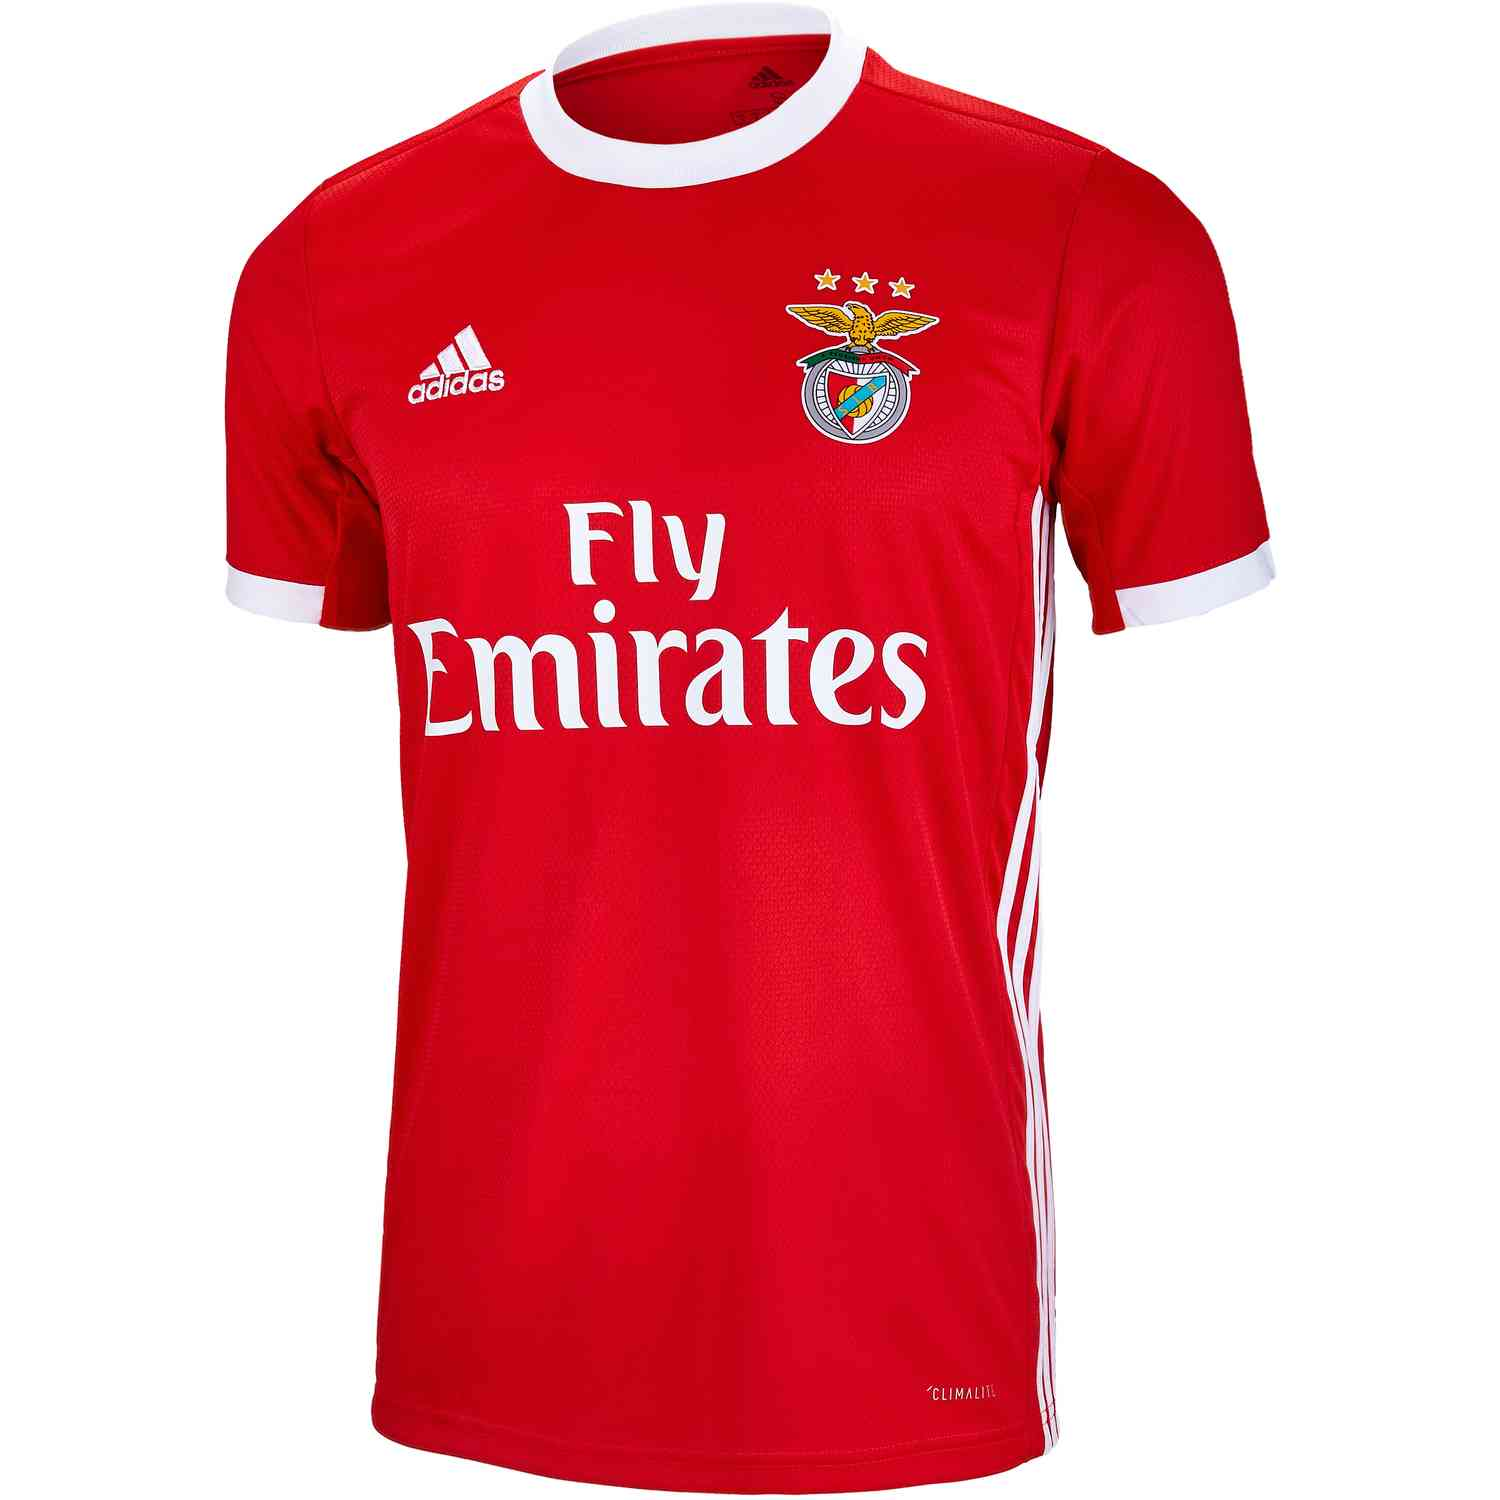 low priced aecdf 06658 SL Benfica Adidas Home jersey 2019/20